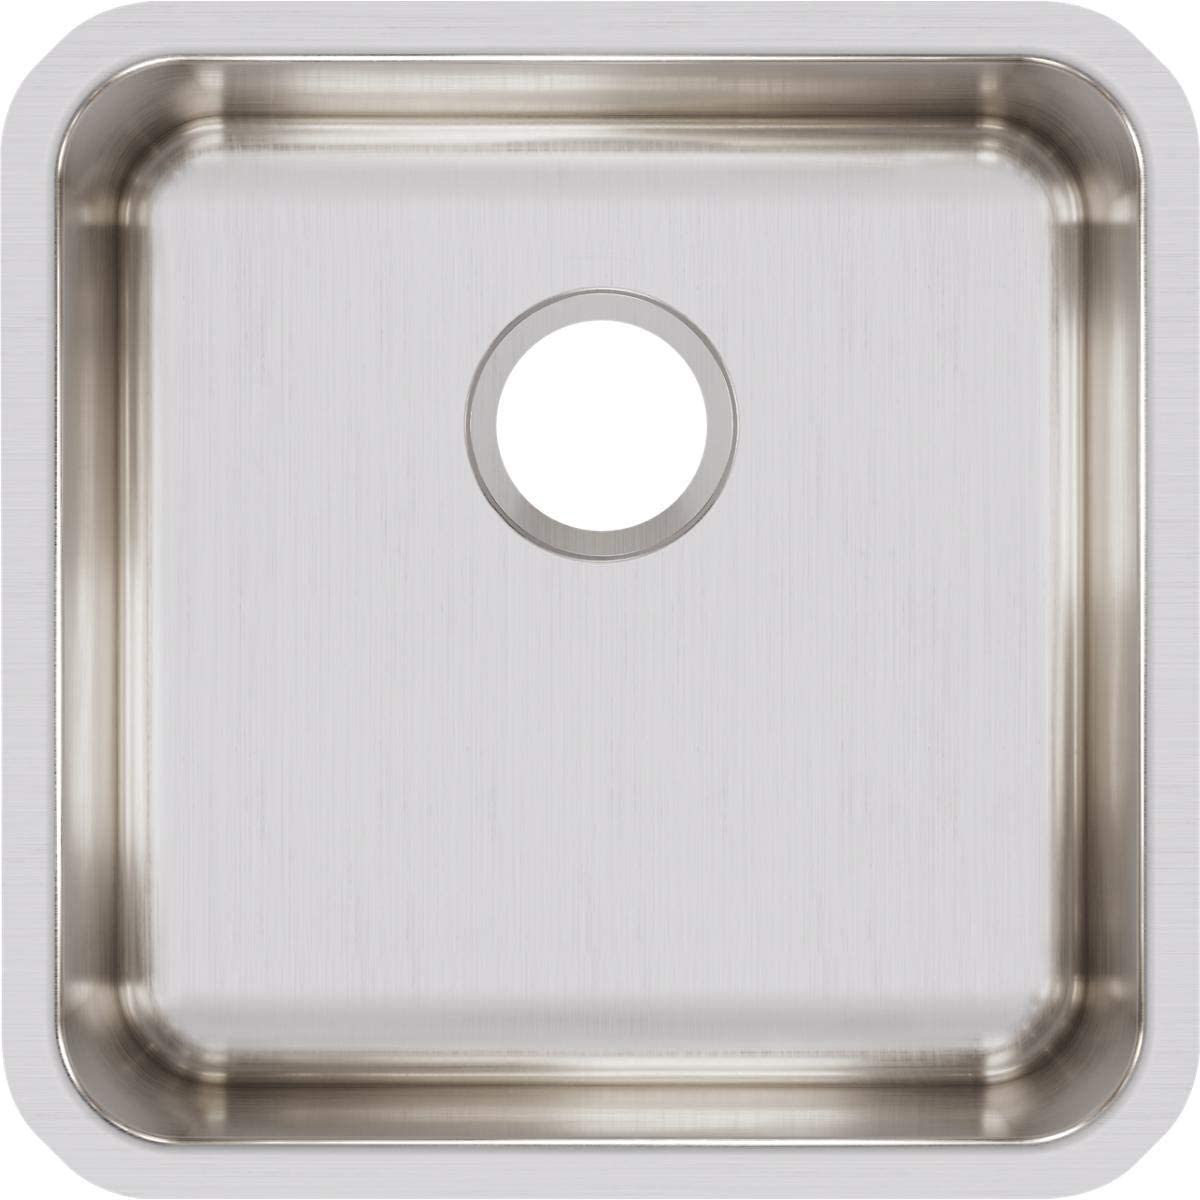 Elkay ELUH1616 Lustertone Classic Single Bowl Undermount Stainless Steel Sink